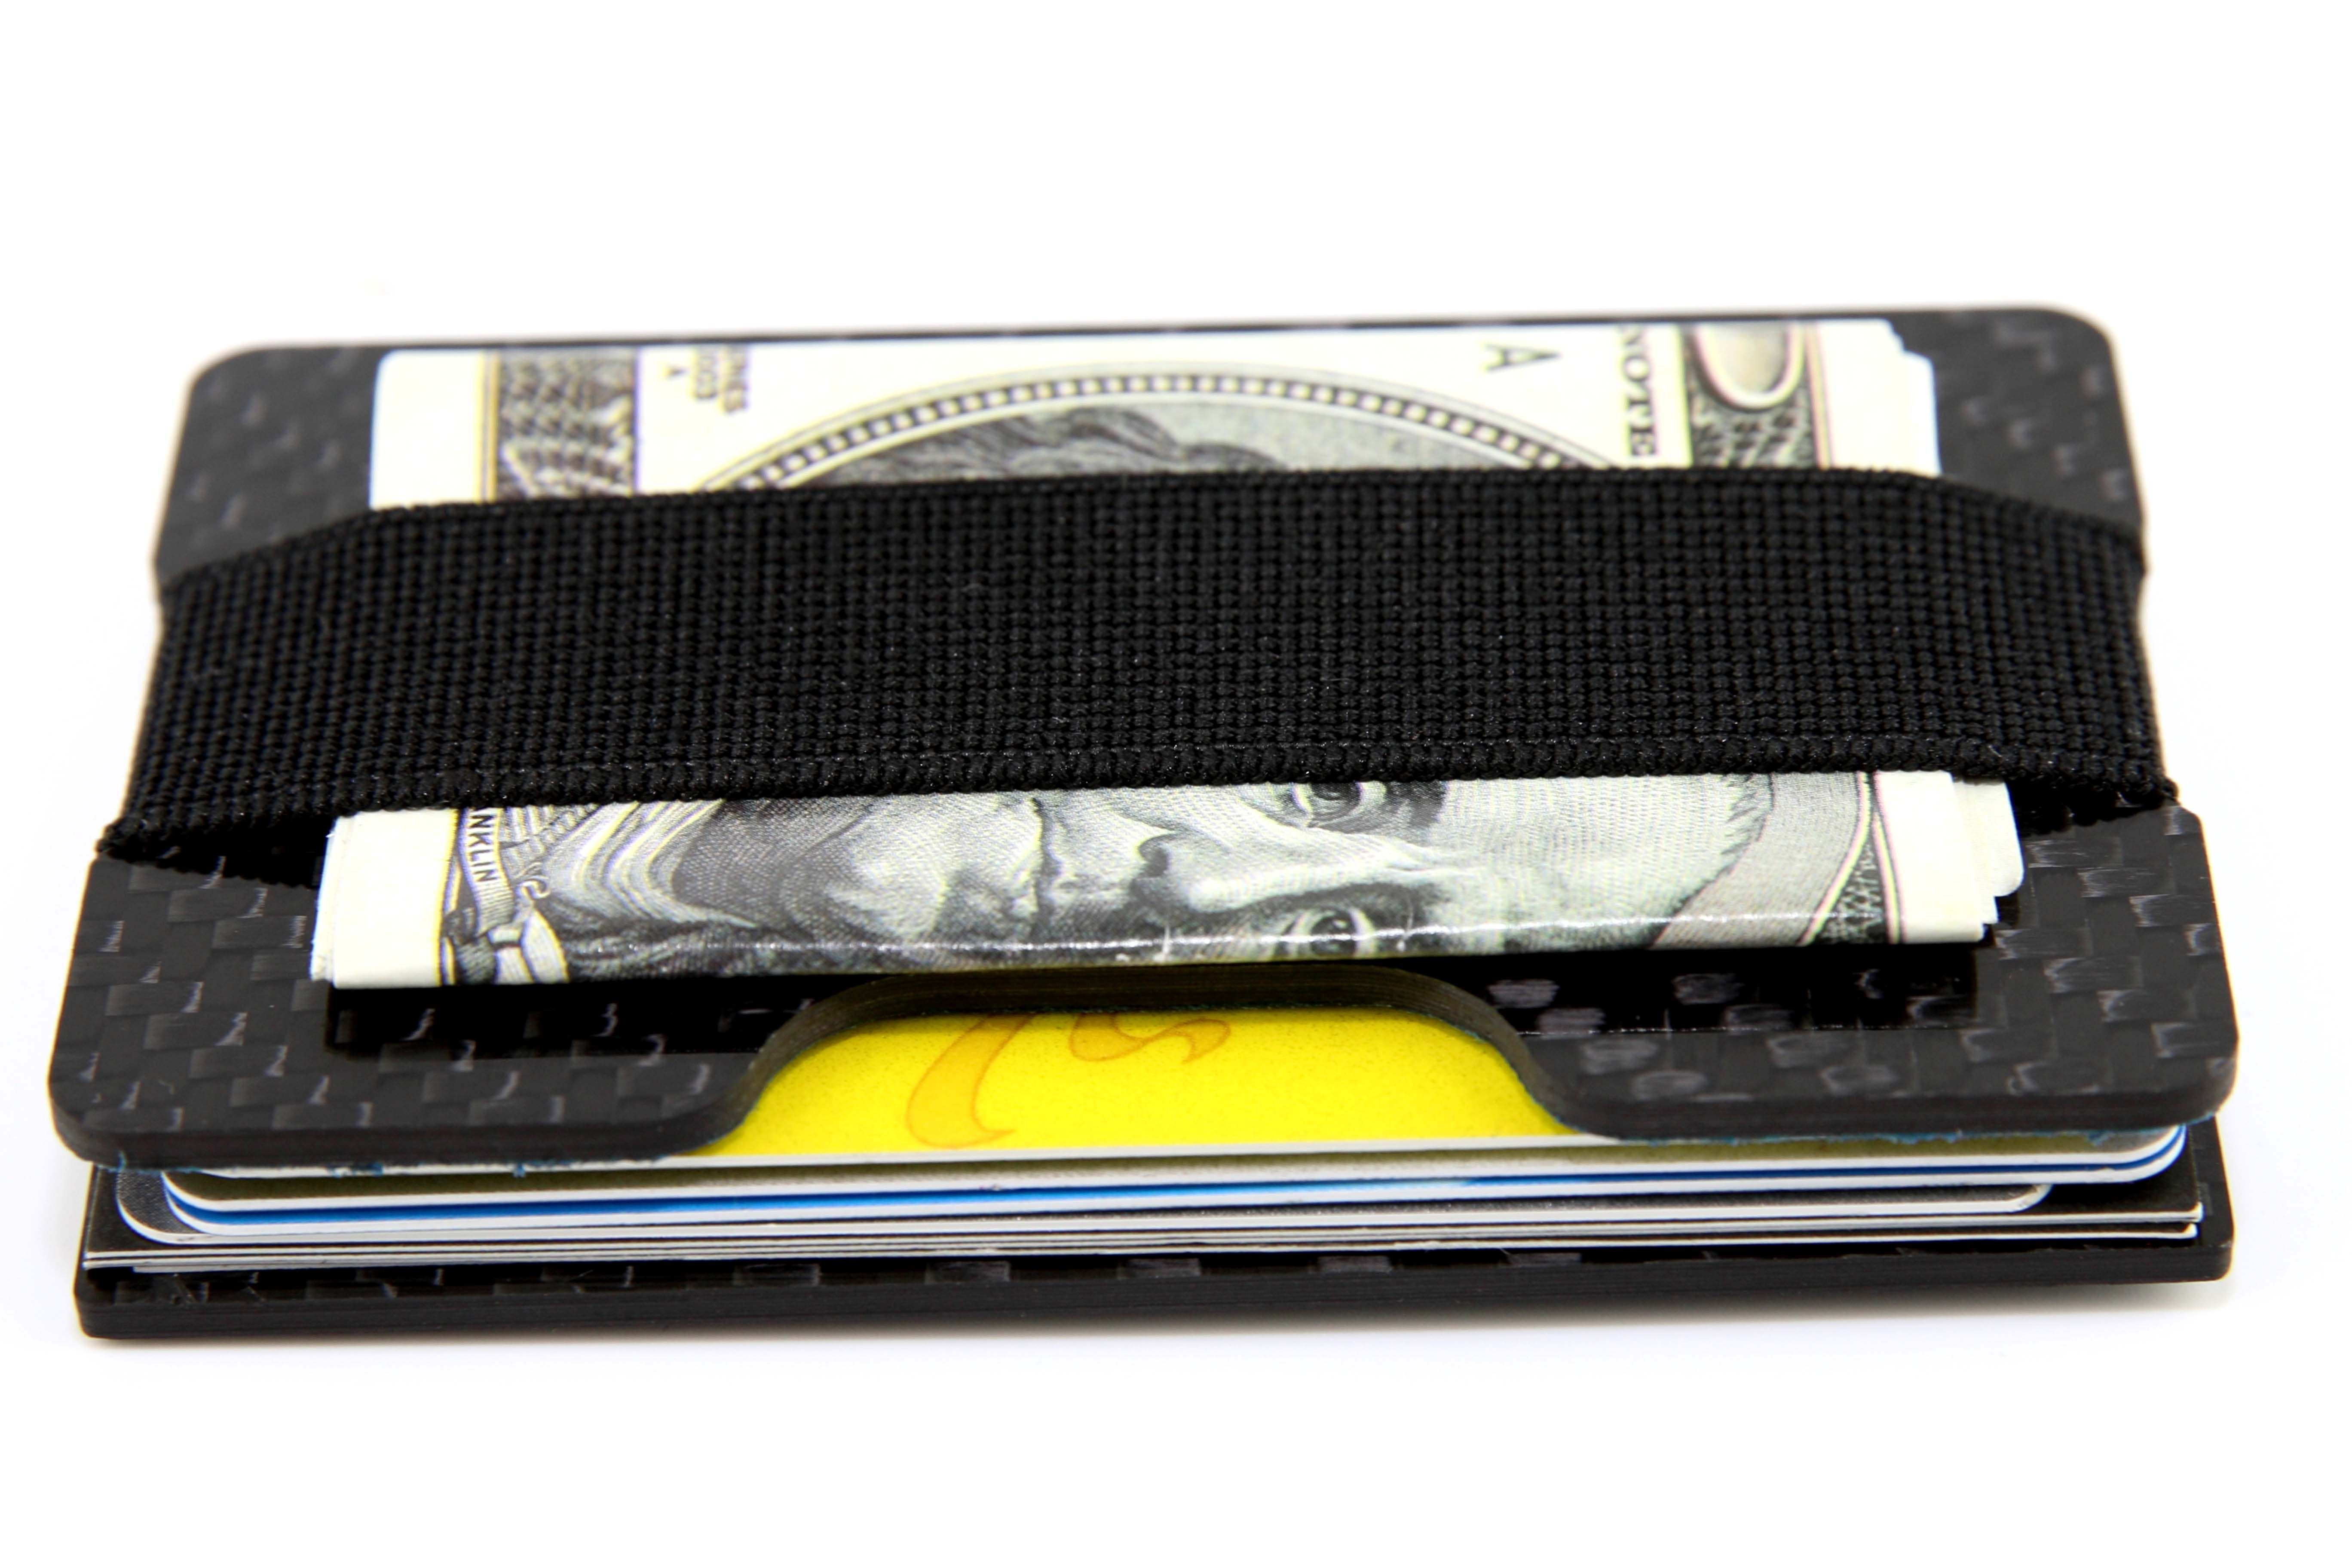 Carbon Fiber Card Holder Slim Wallet Real Carbon Fiber Made From